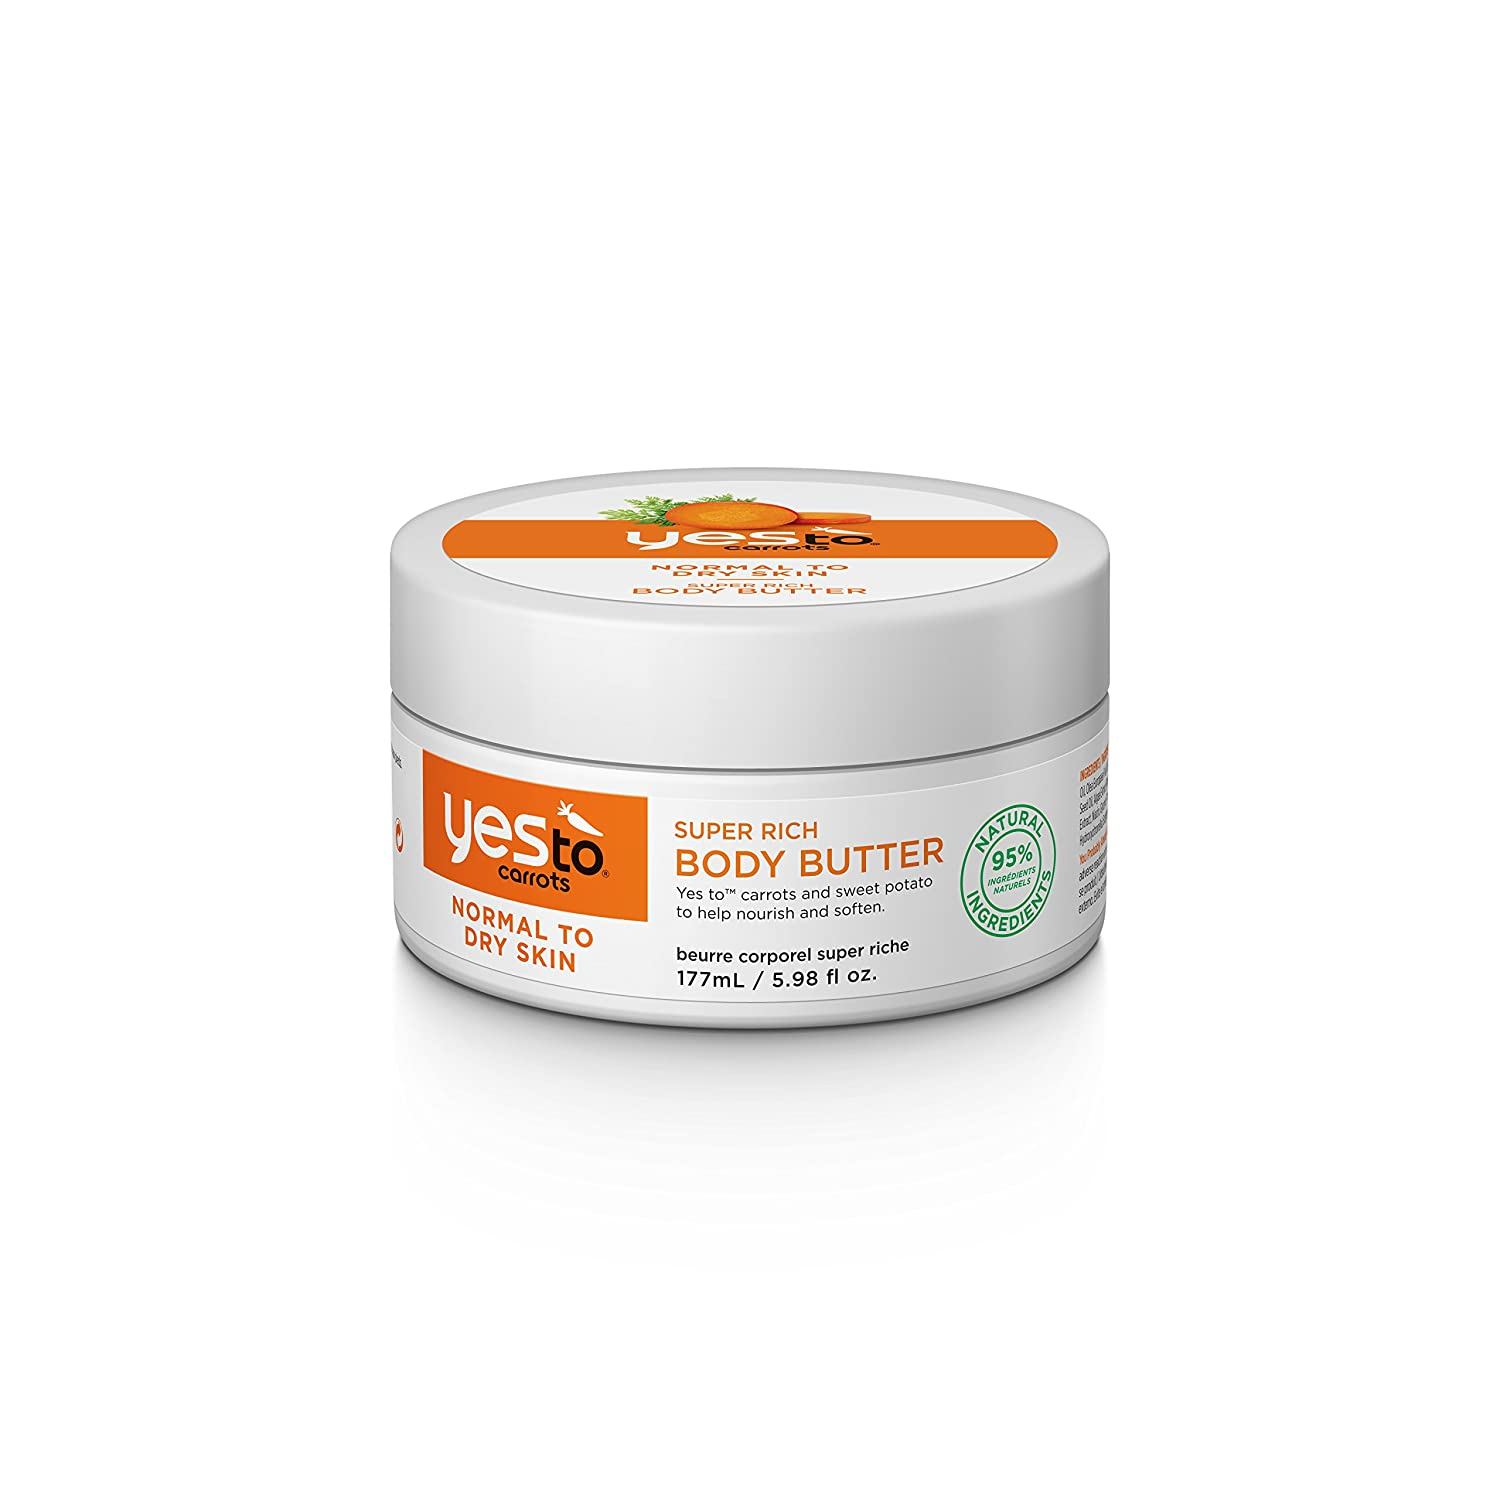 Yes To Carrots Super Rich Body Butter, 1er Pack (1 x 177 g) 1415102